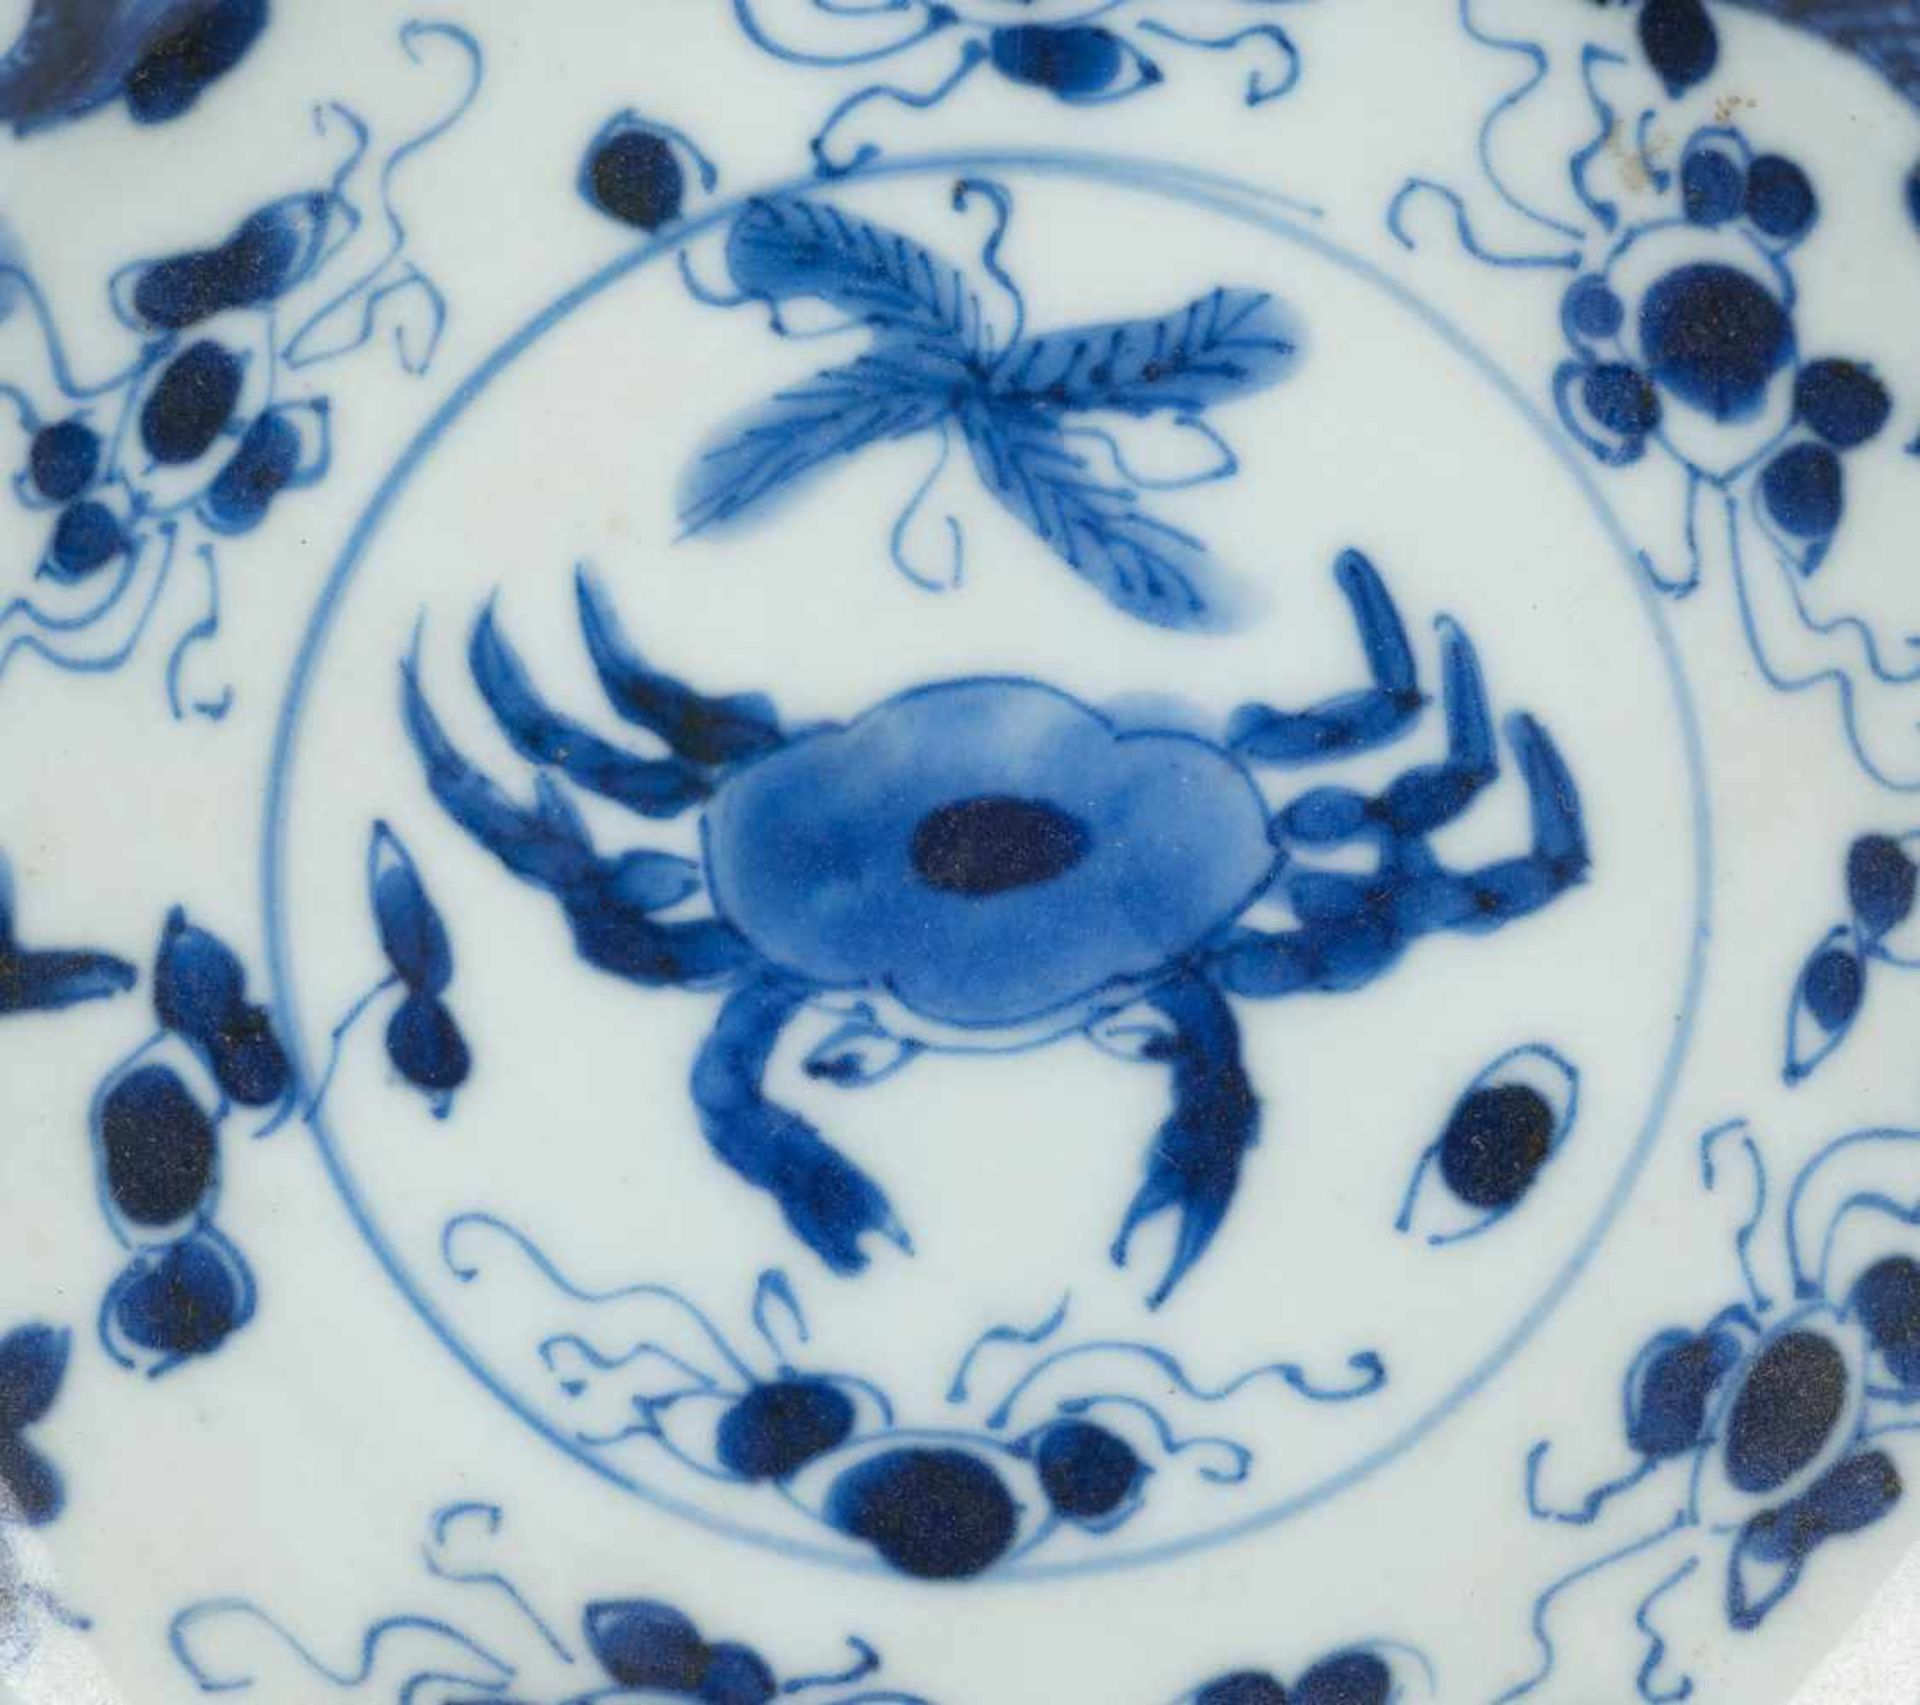 Los 7 - A celadon and underglaze blue cup and saucer basin. Lingzhi fungus mark. China. Qing dynasty (1644-